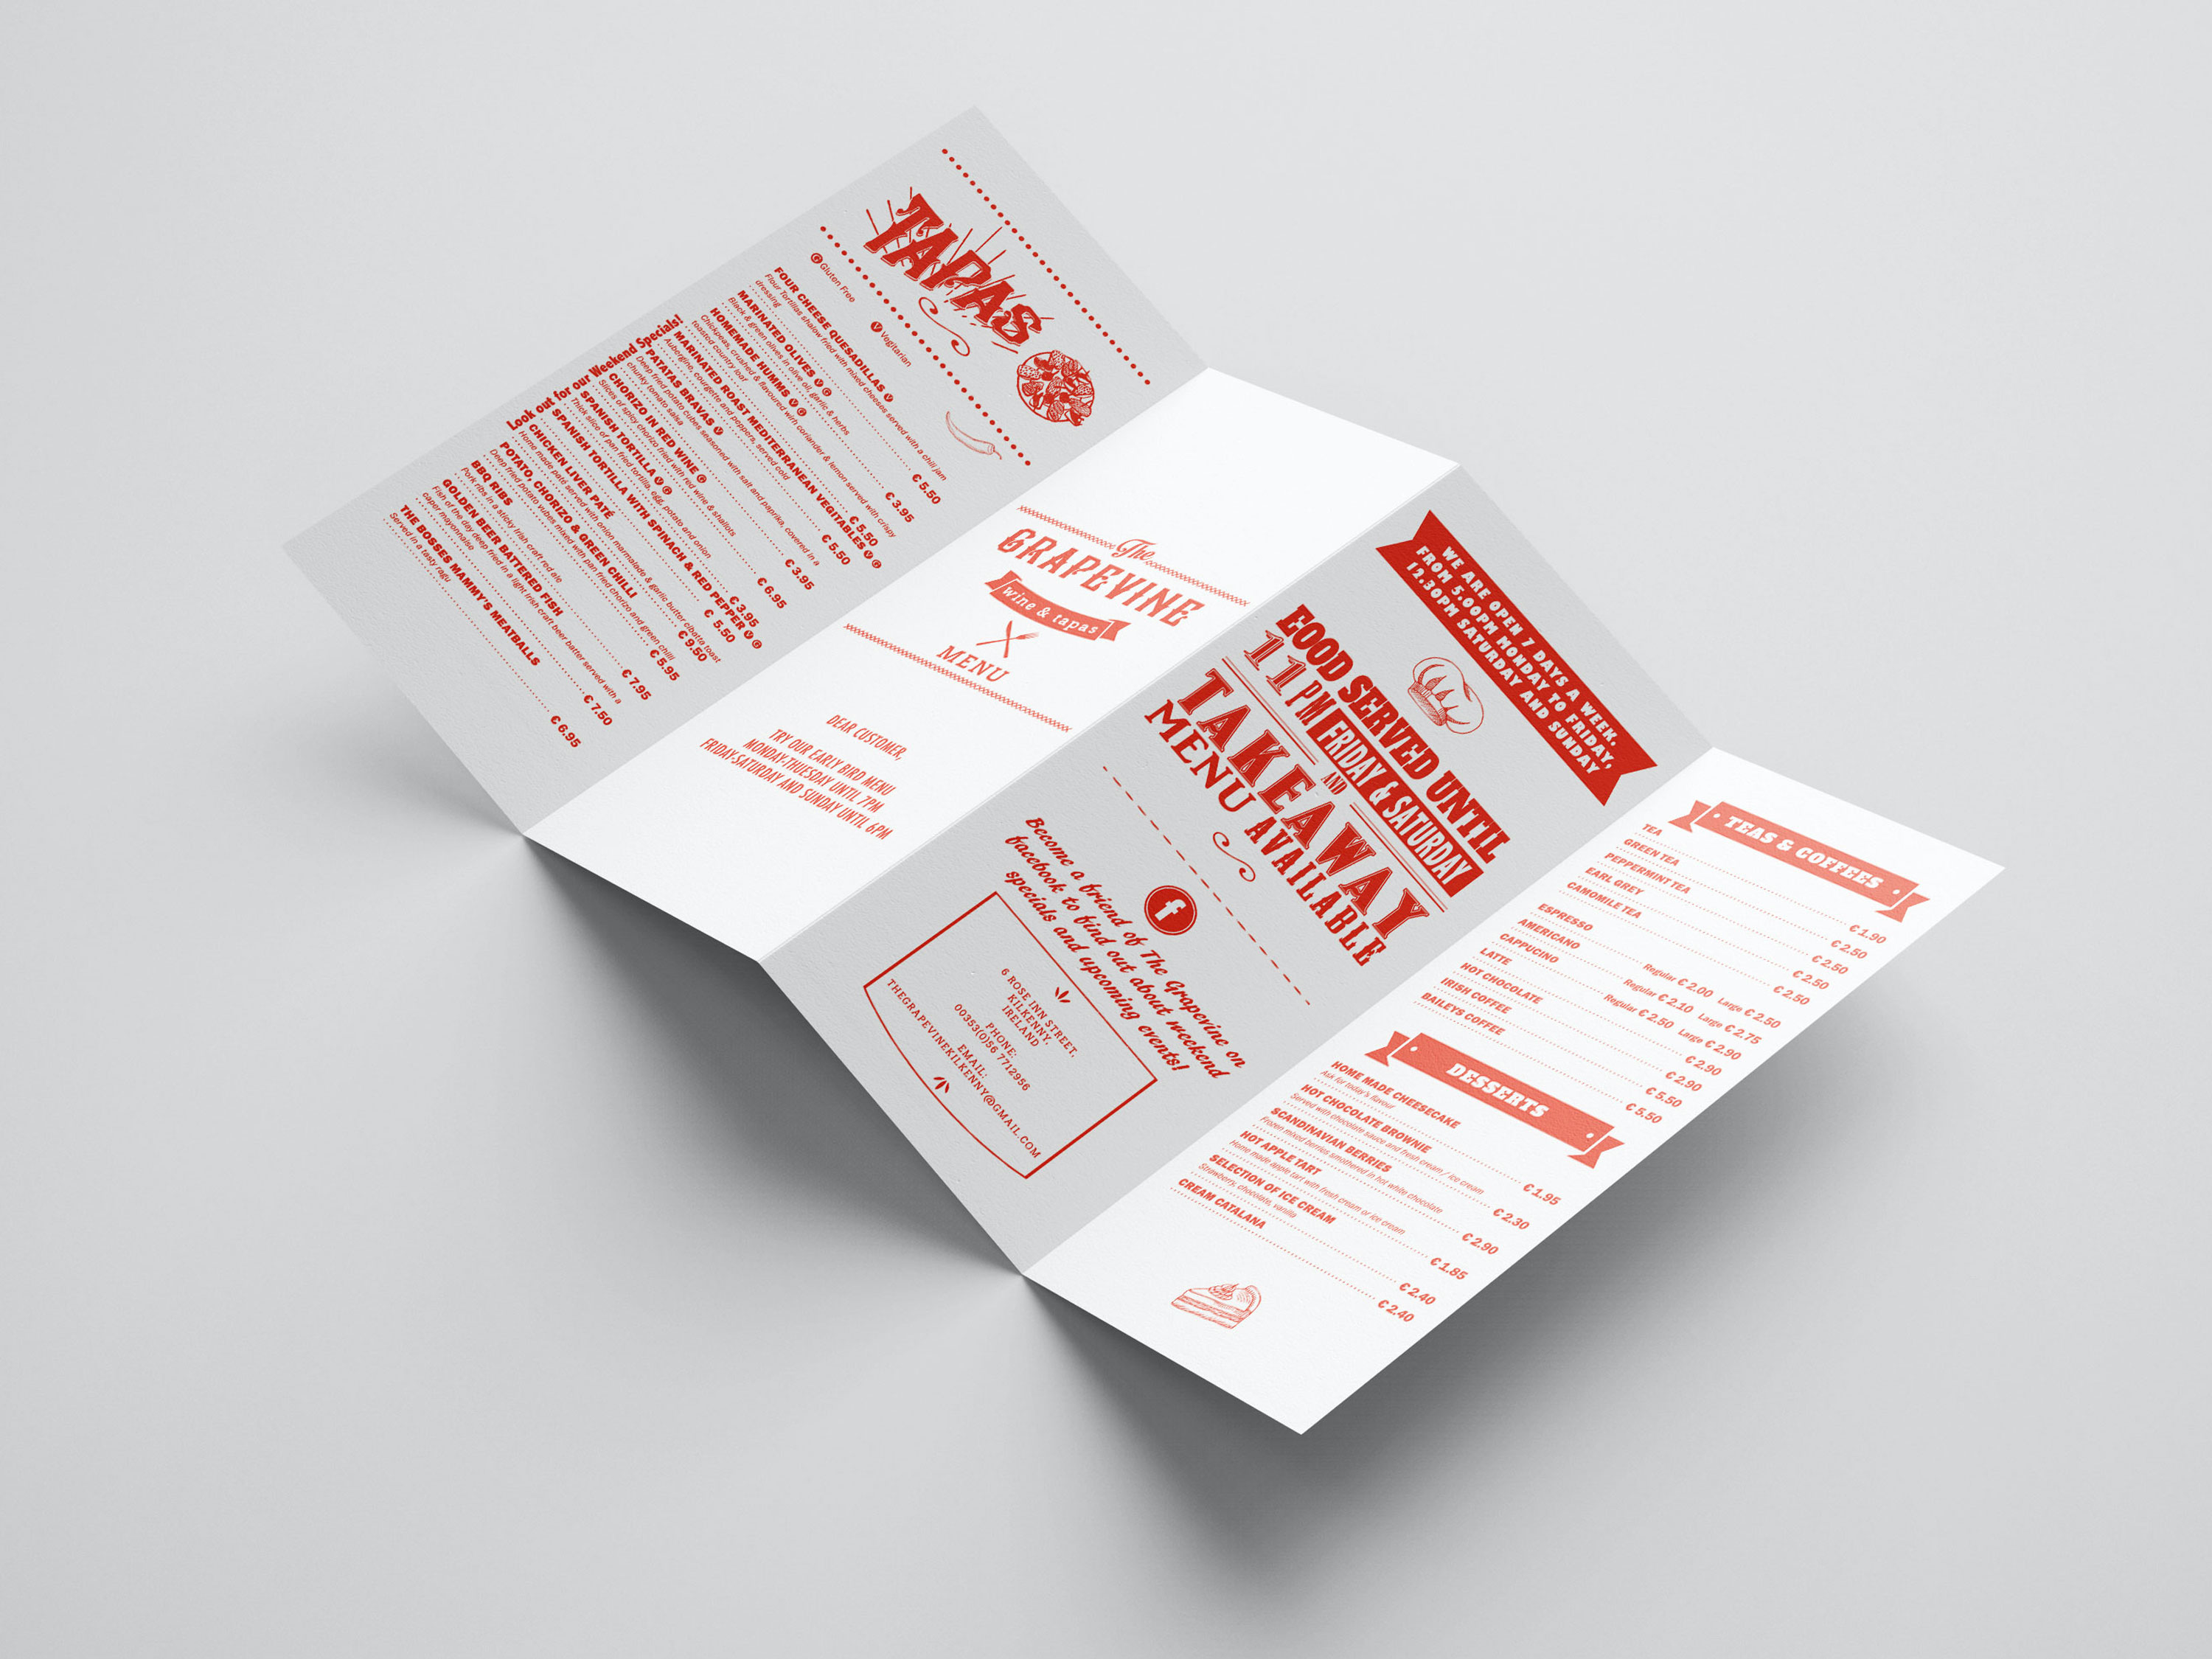 Tareboda design -  Takeaway Menu Kilenny